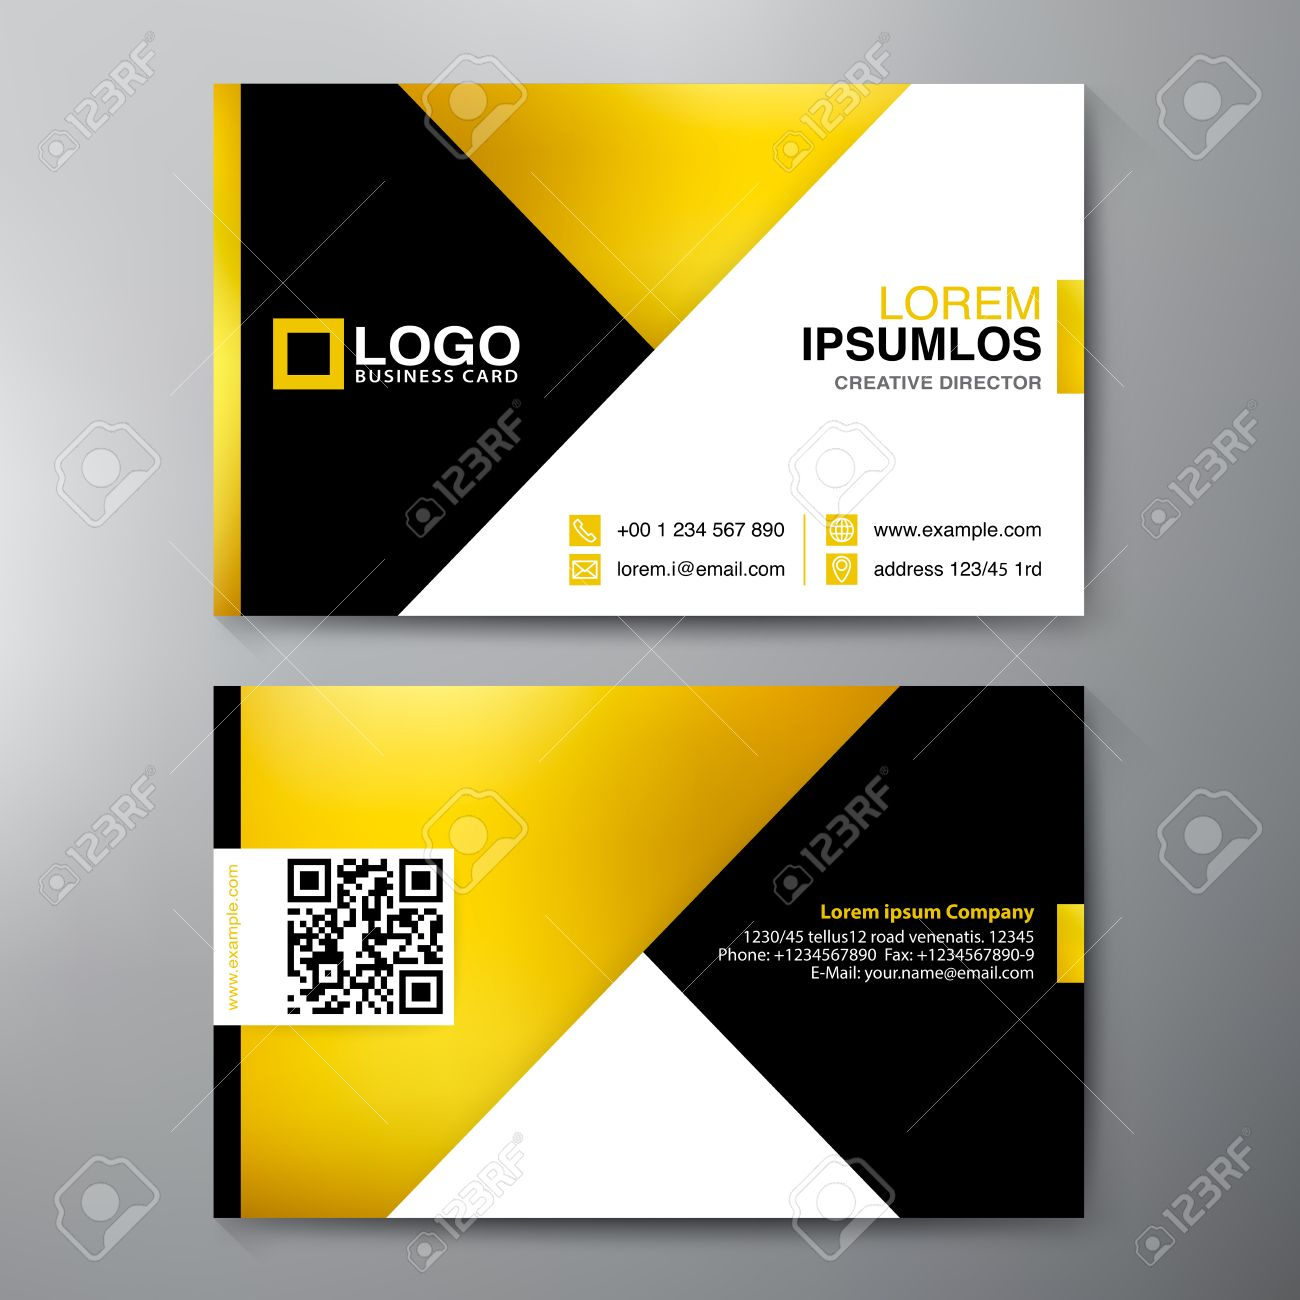 Modern business card design template vector illustration royalty modern business card design template vector illustration stock vector 39179741 reheart Gallery